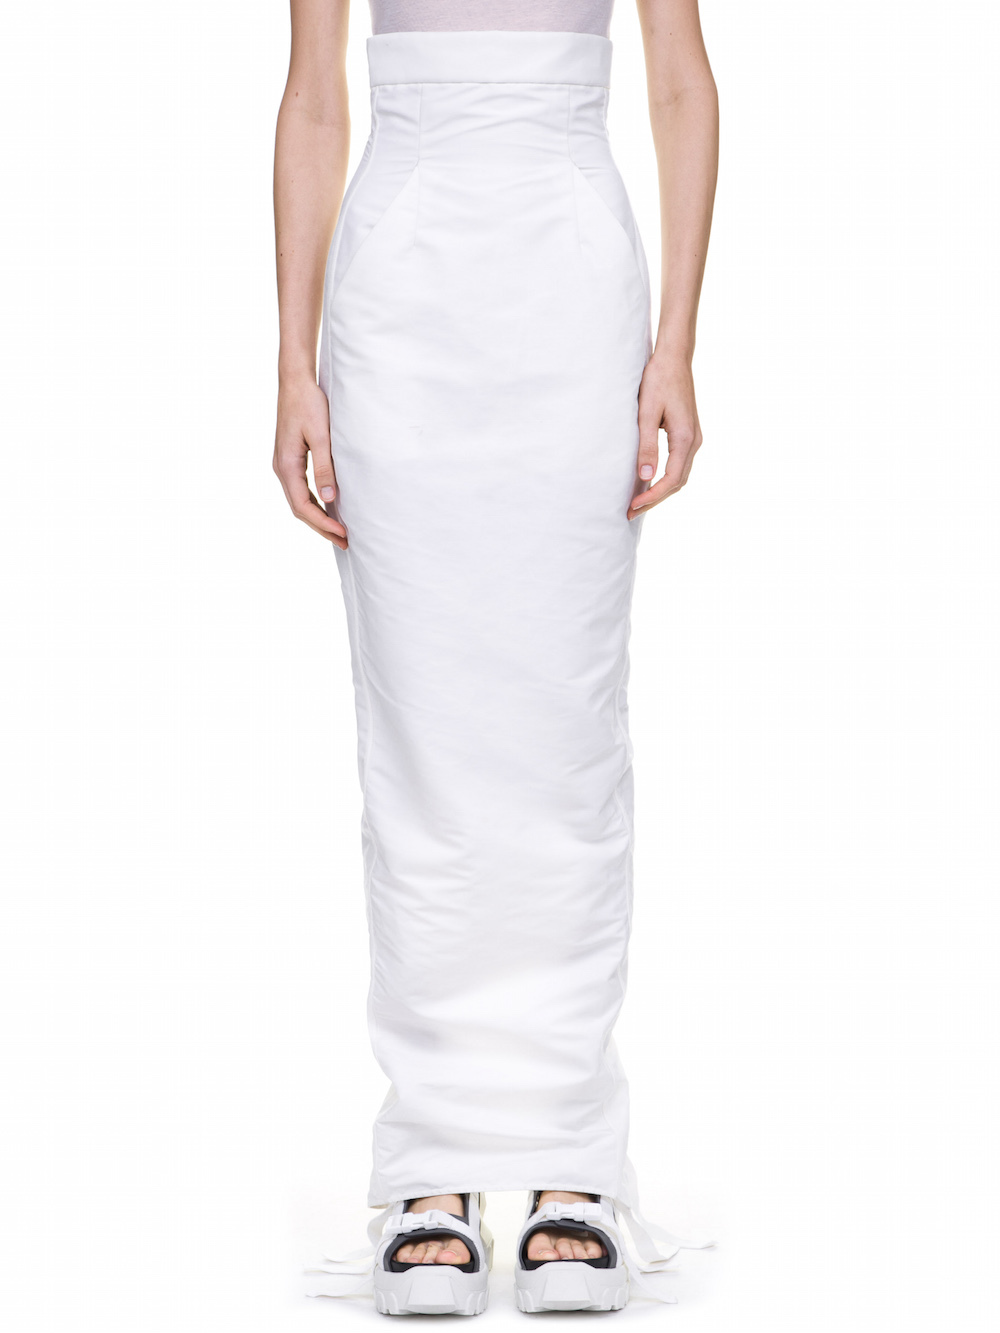 RICK OWENS DIRT PILLAR SKIRT IN WHITE TECH